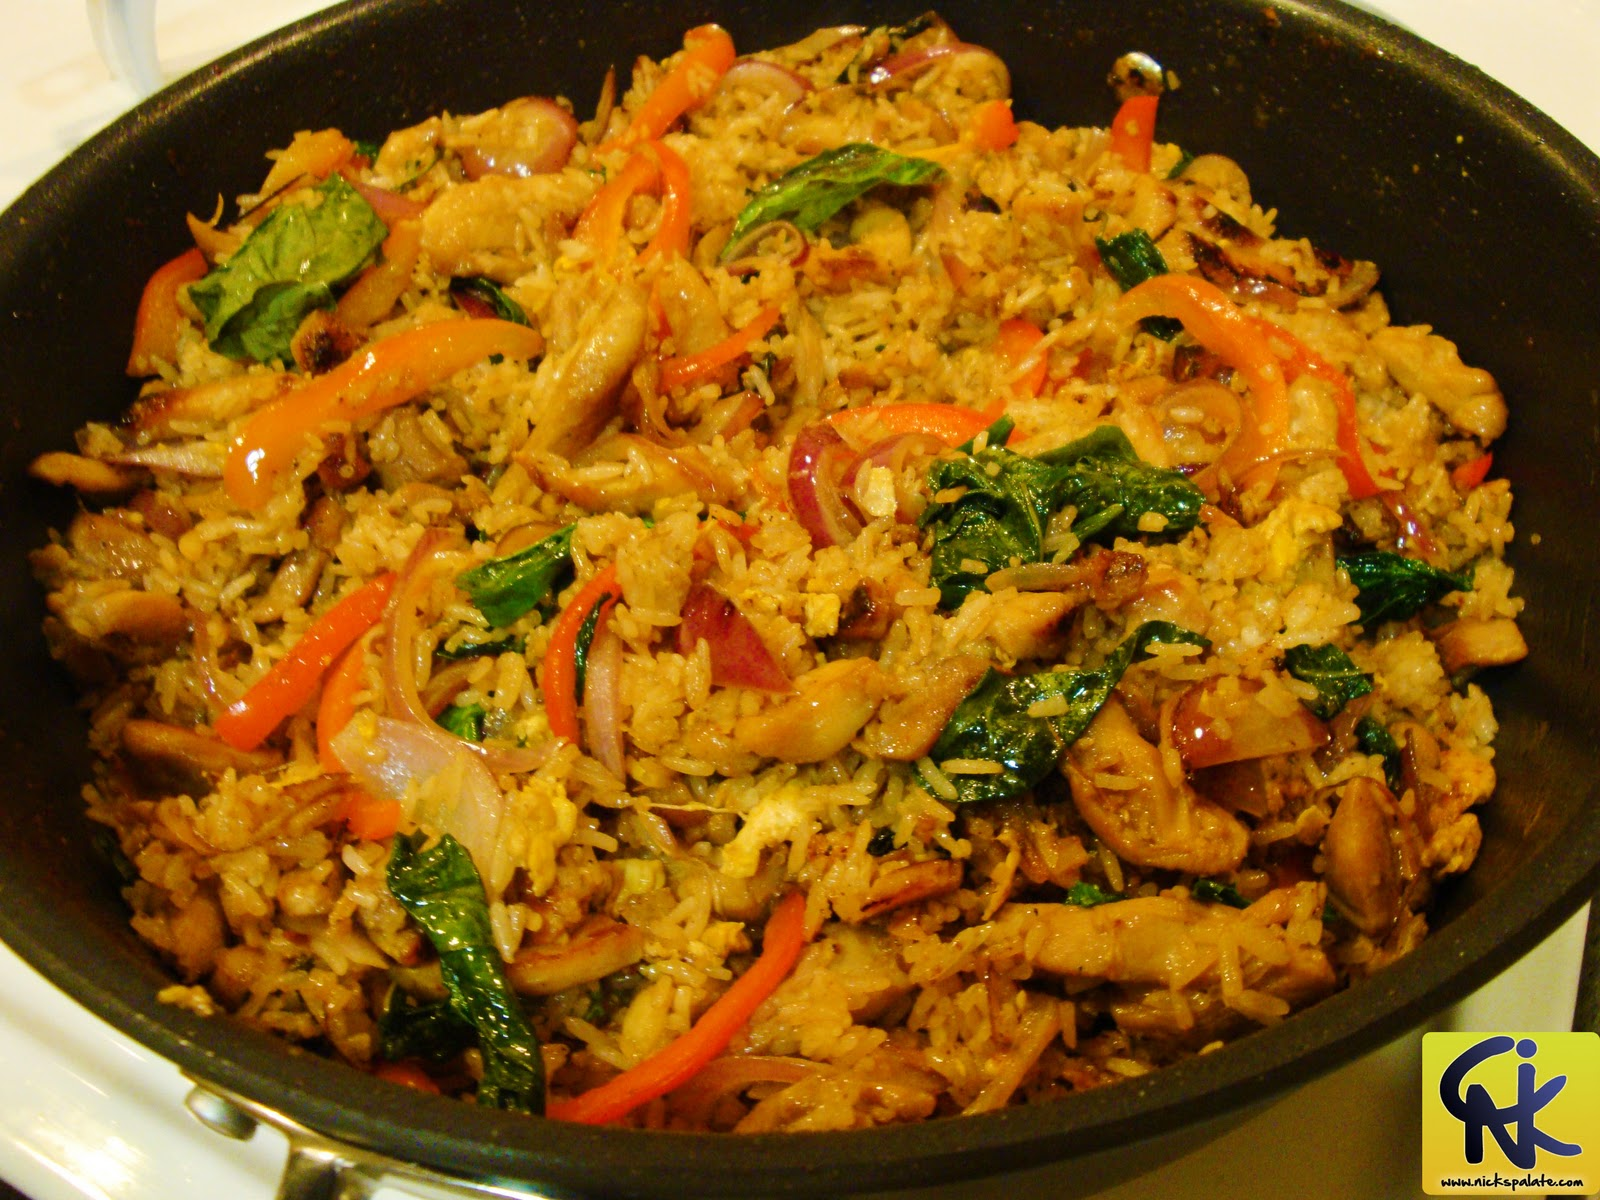 Nick's Palate - Cooking Made Simple : Thai Fried Rice